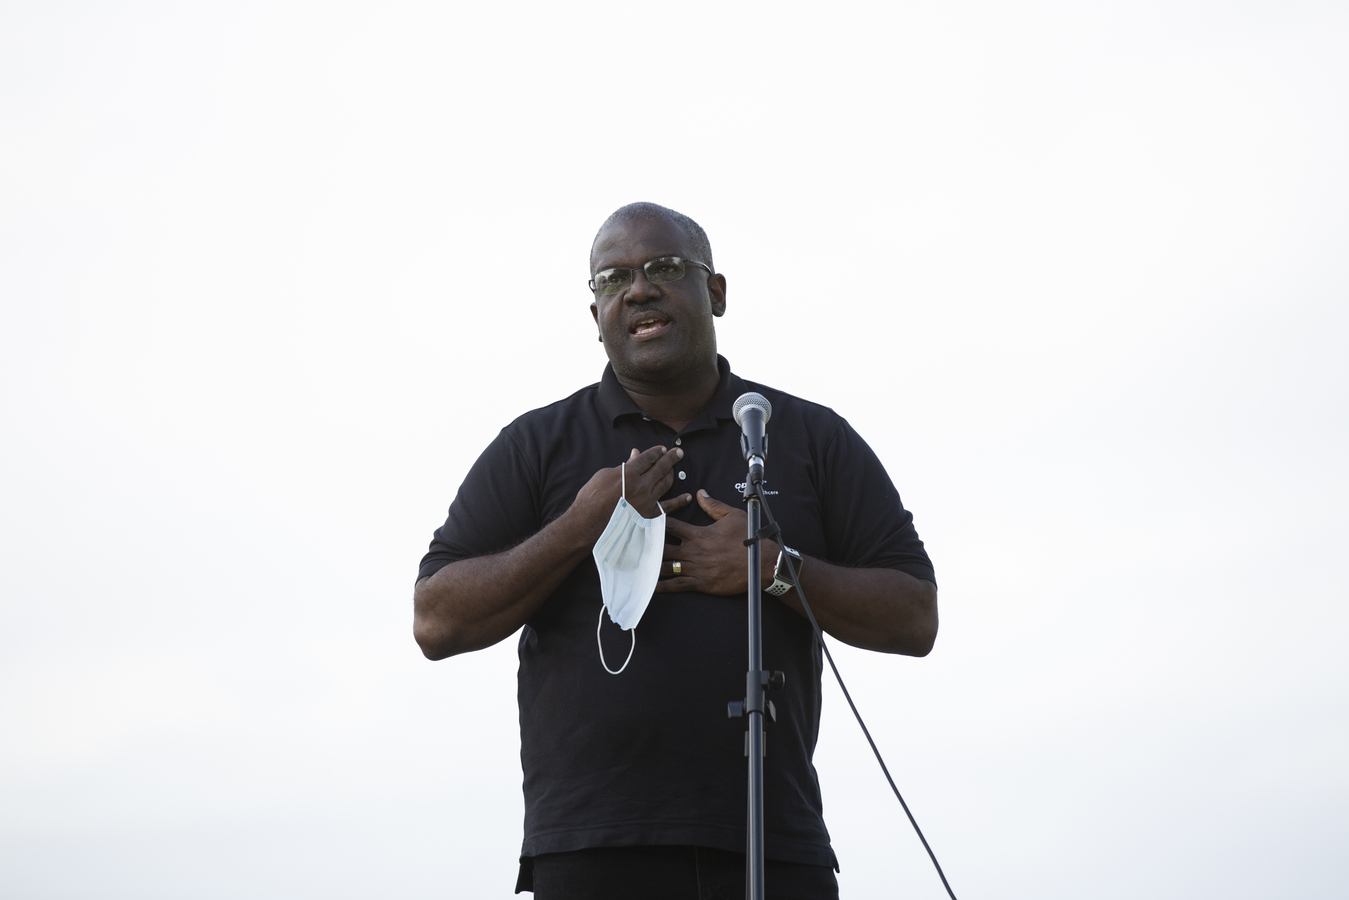 Black Lives Matter Rally Dobbs Ferry, NY 9/13/20 Westchester Deputy County Executive Ken Jenkins